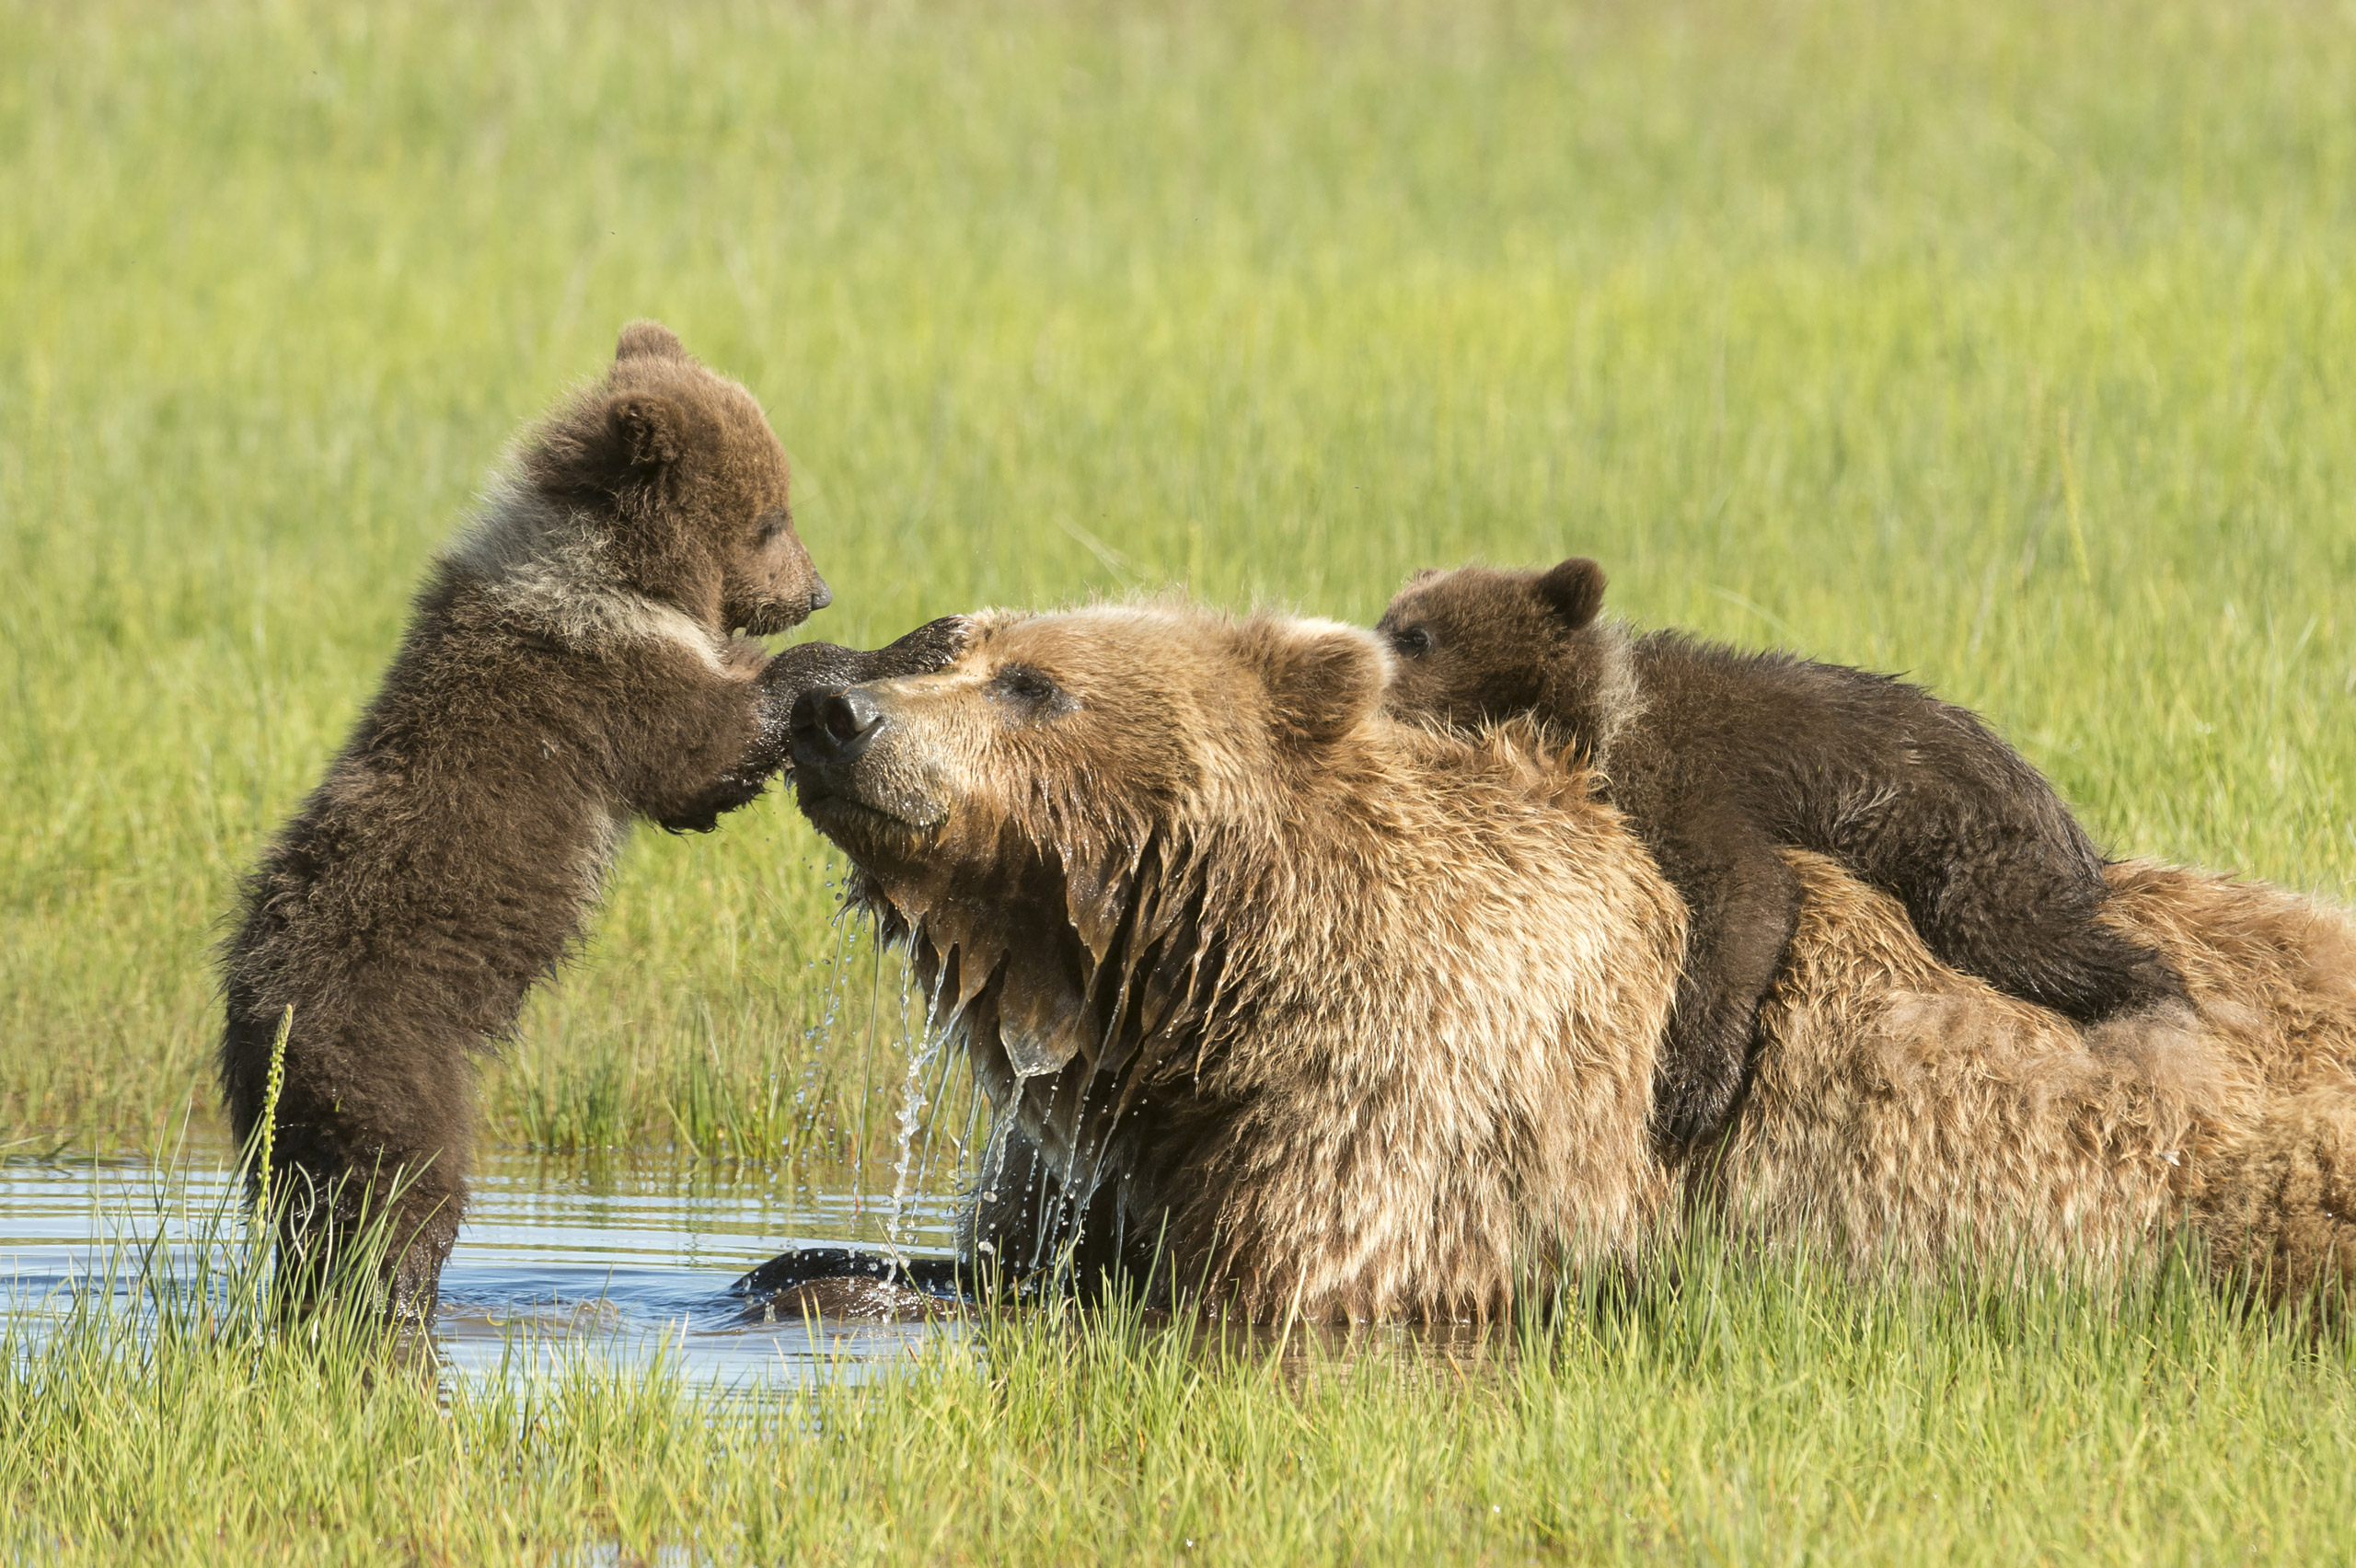 Grizzly bears, <i>Ursus horribilis.</i>Status: Downgraded to 'threatened' status in 1975, with an additional non-essential experimental population in Idaho and several other regional populations under review.